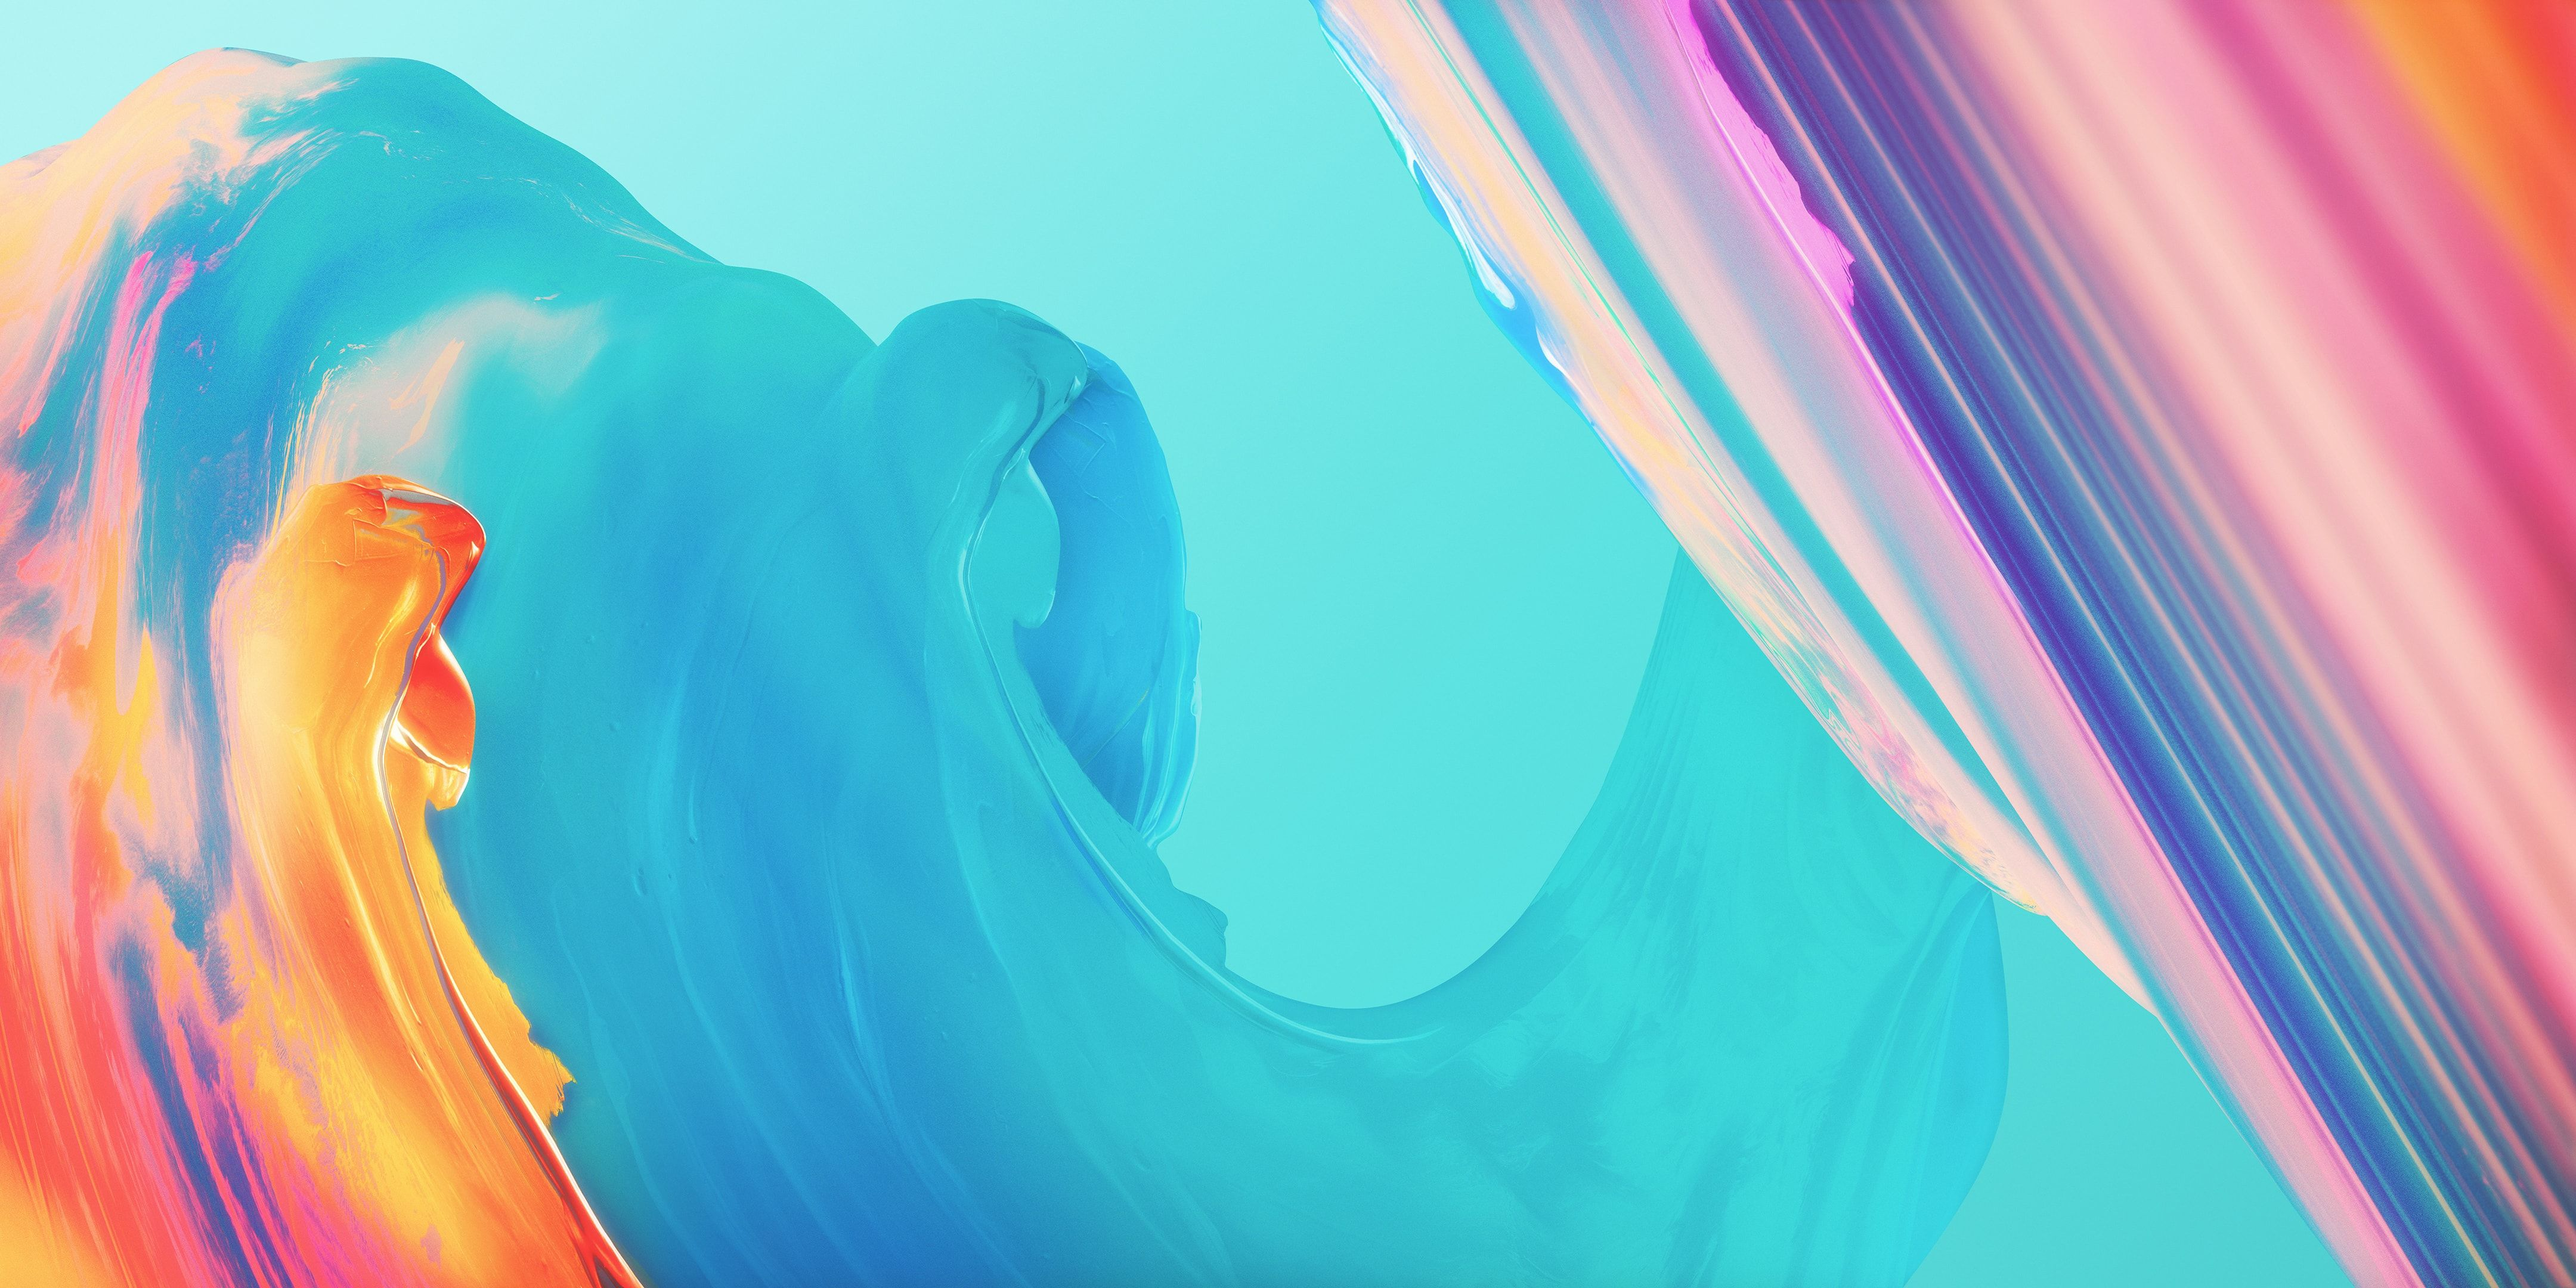 Paint Colorful Waves Oneplus 4k Abstract, Painting